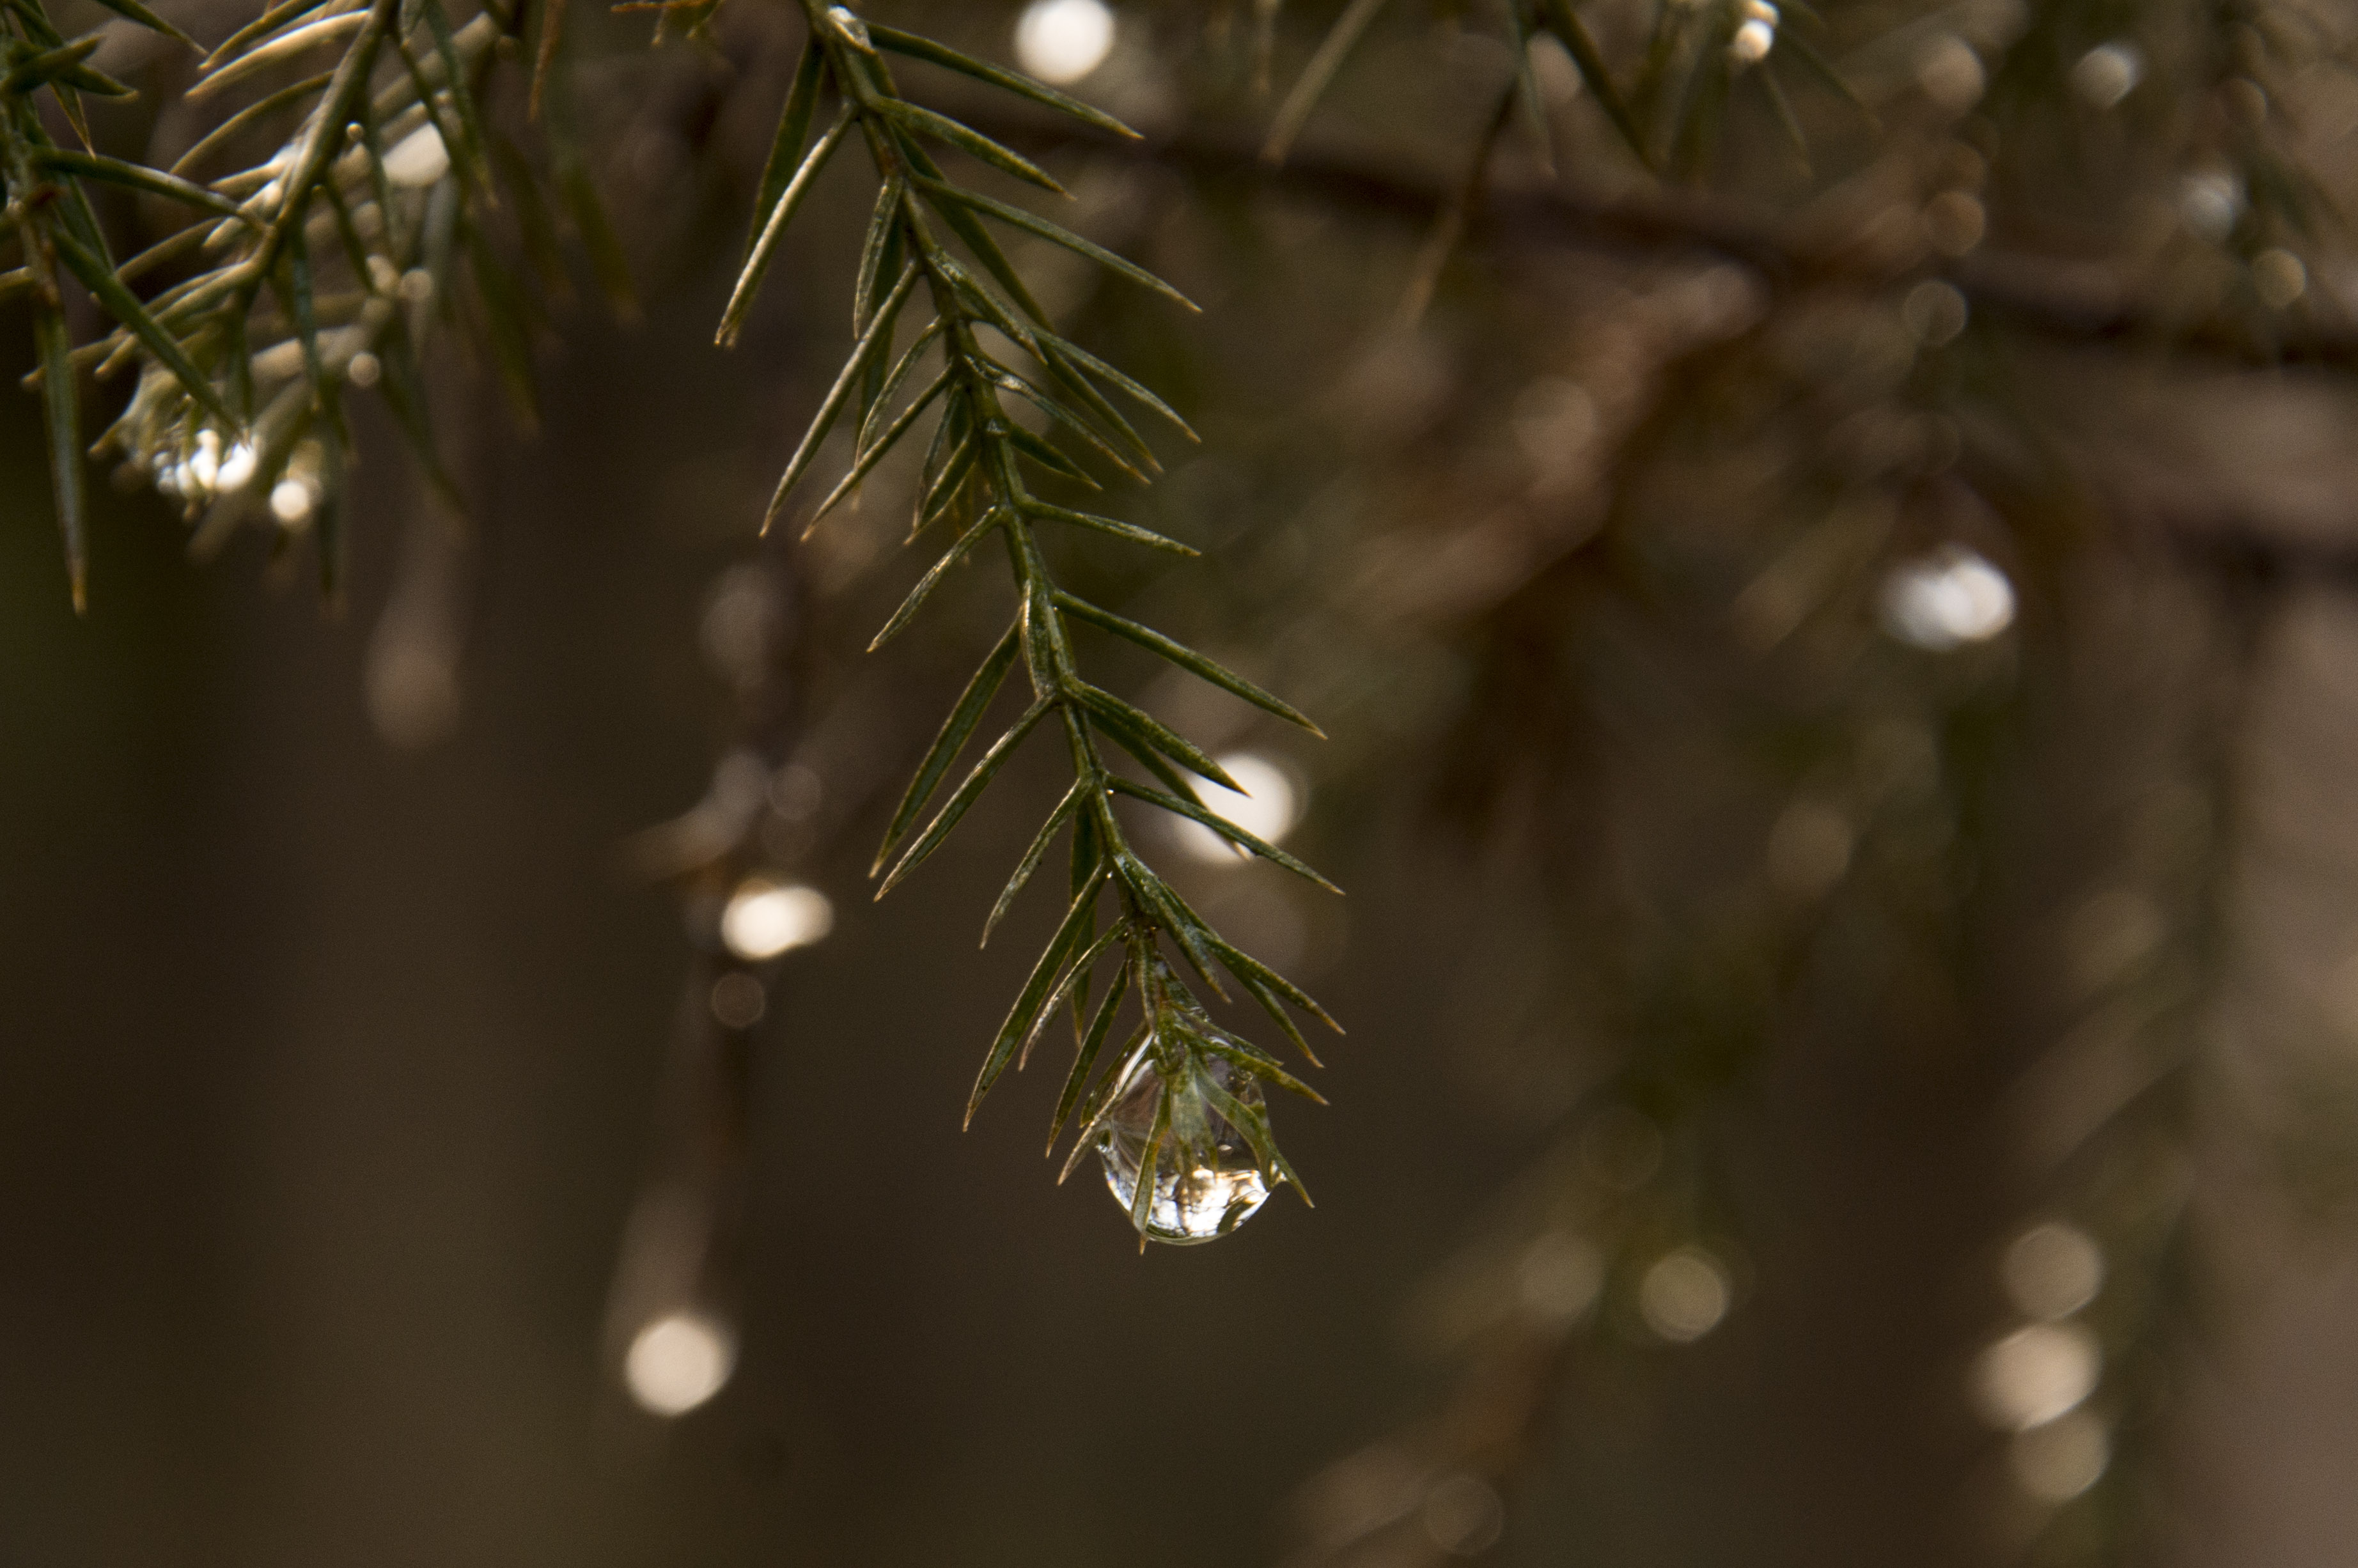 After the rain ...